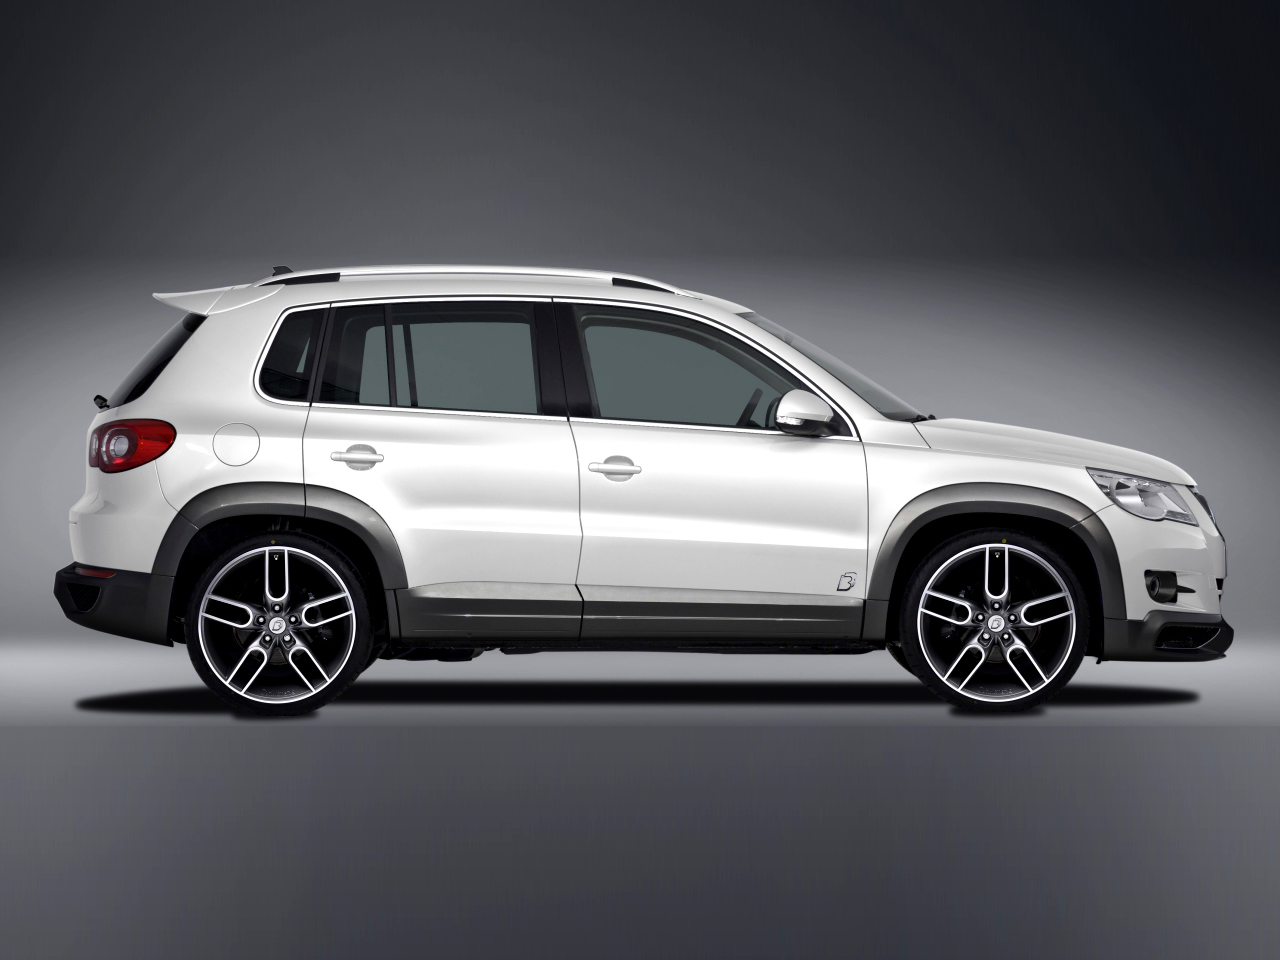 VW Tiguan by Abt Sportsline